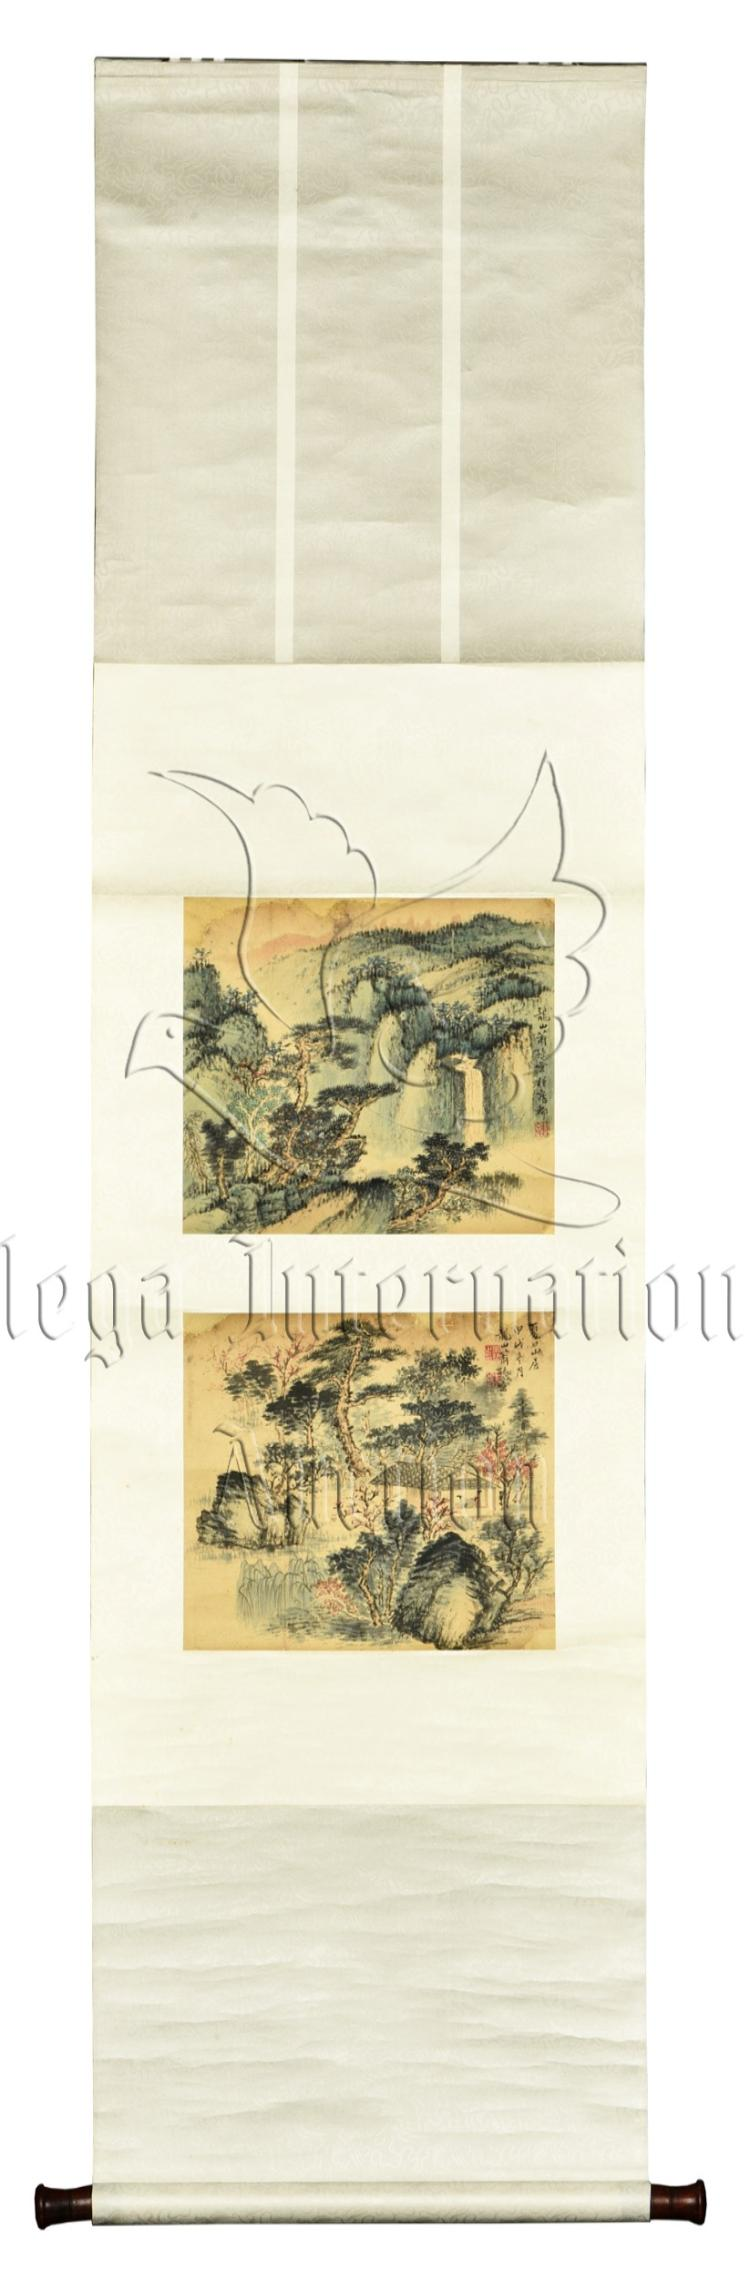 XIAO XUN: INK AND COLOR ON PAPER PAINTING 'LANDSCAPE SCENERY'